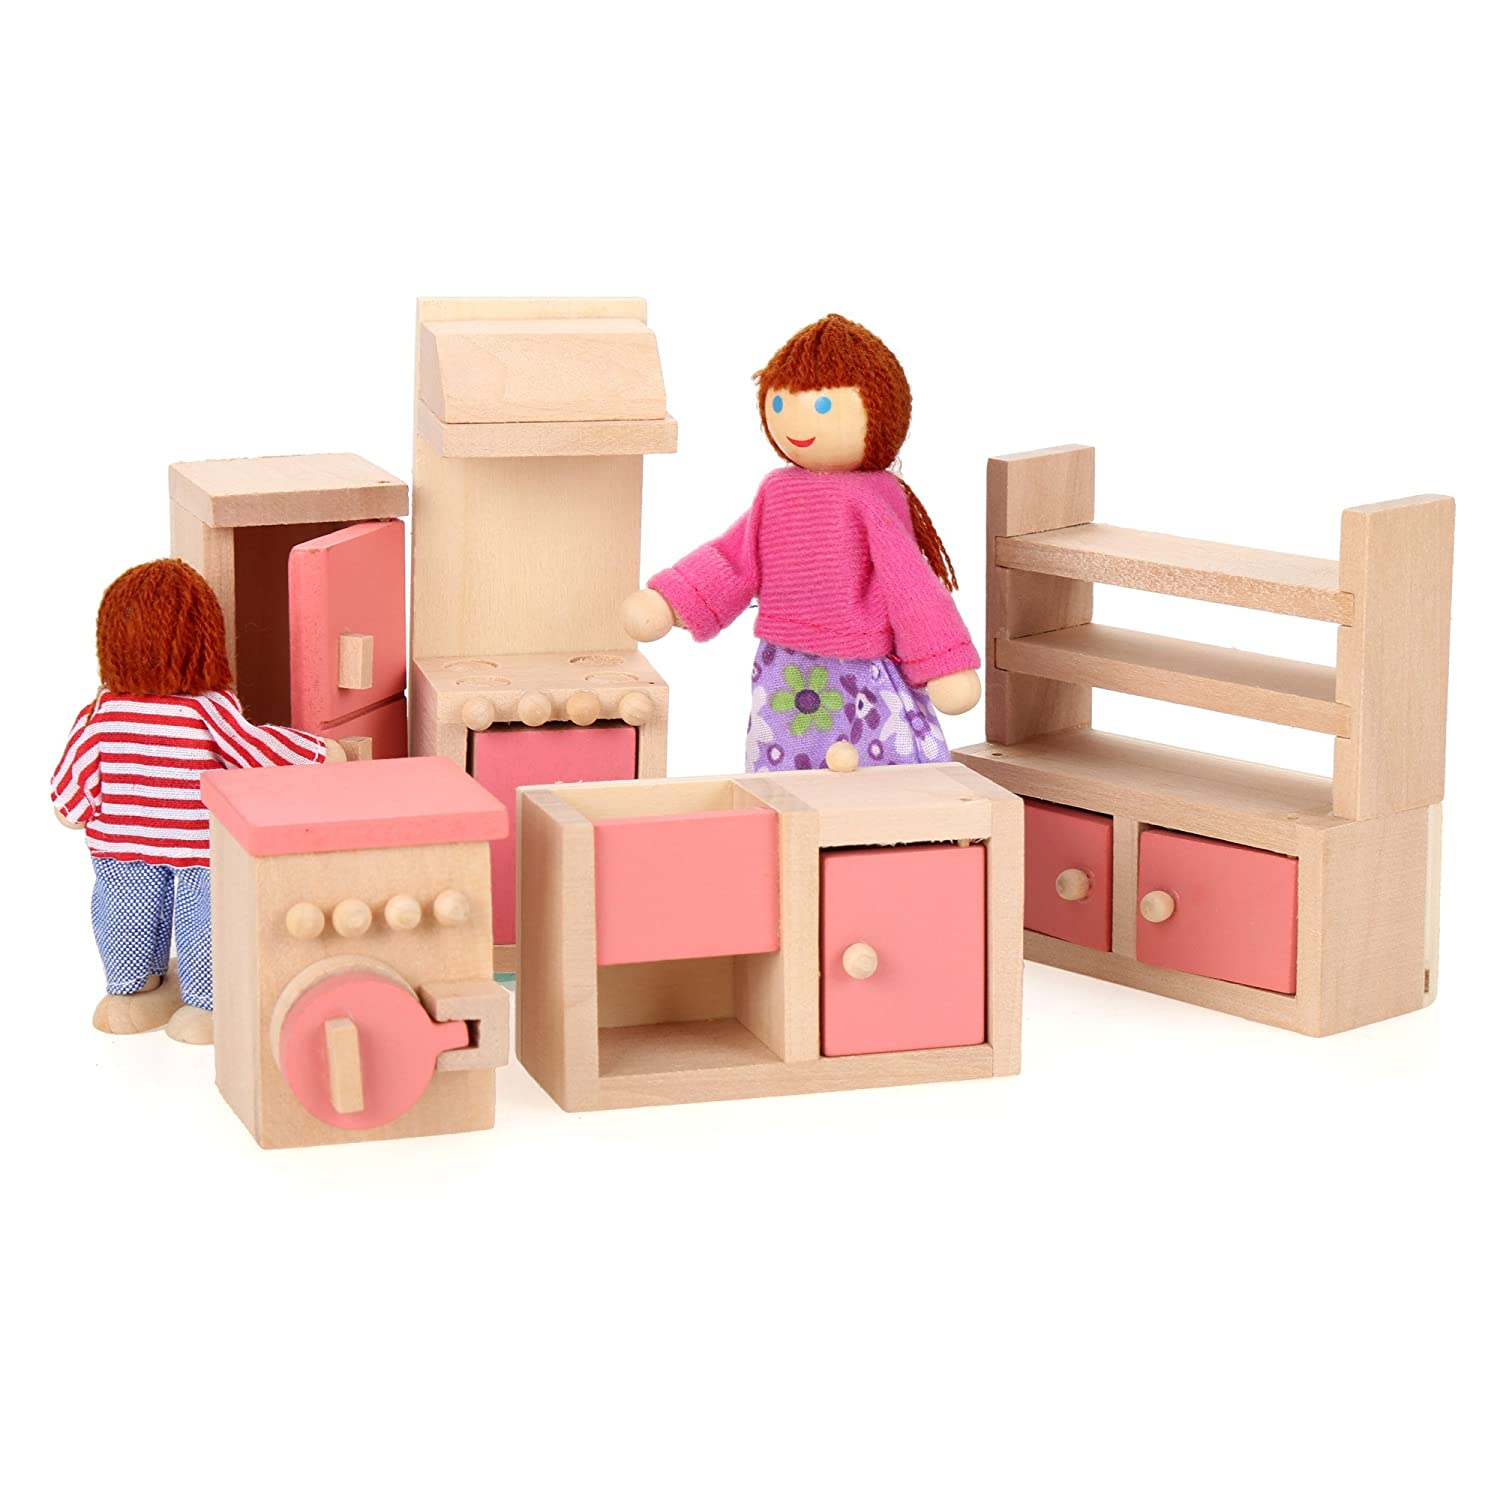 doll house furniture sets. Amazon.com: Arshiner Happy Family Doll House Furniture Livingroom Set,Pink: Toys \u0026 Games Sets